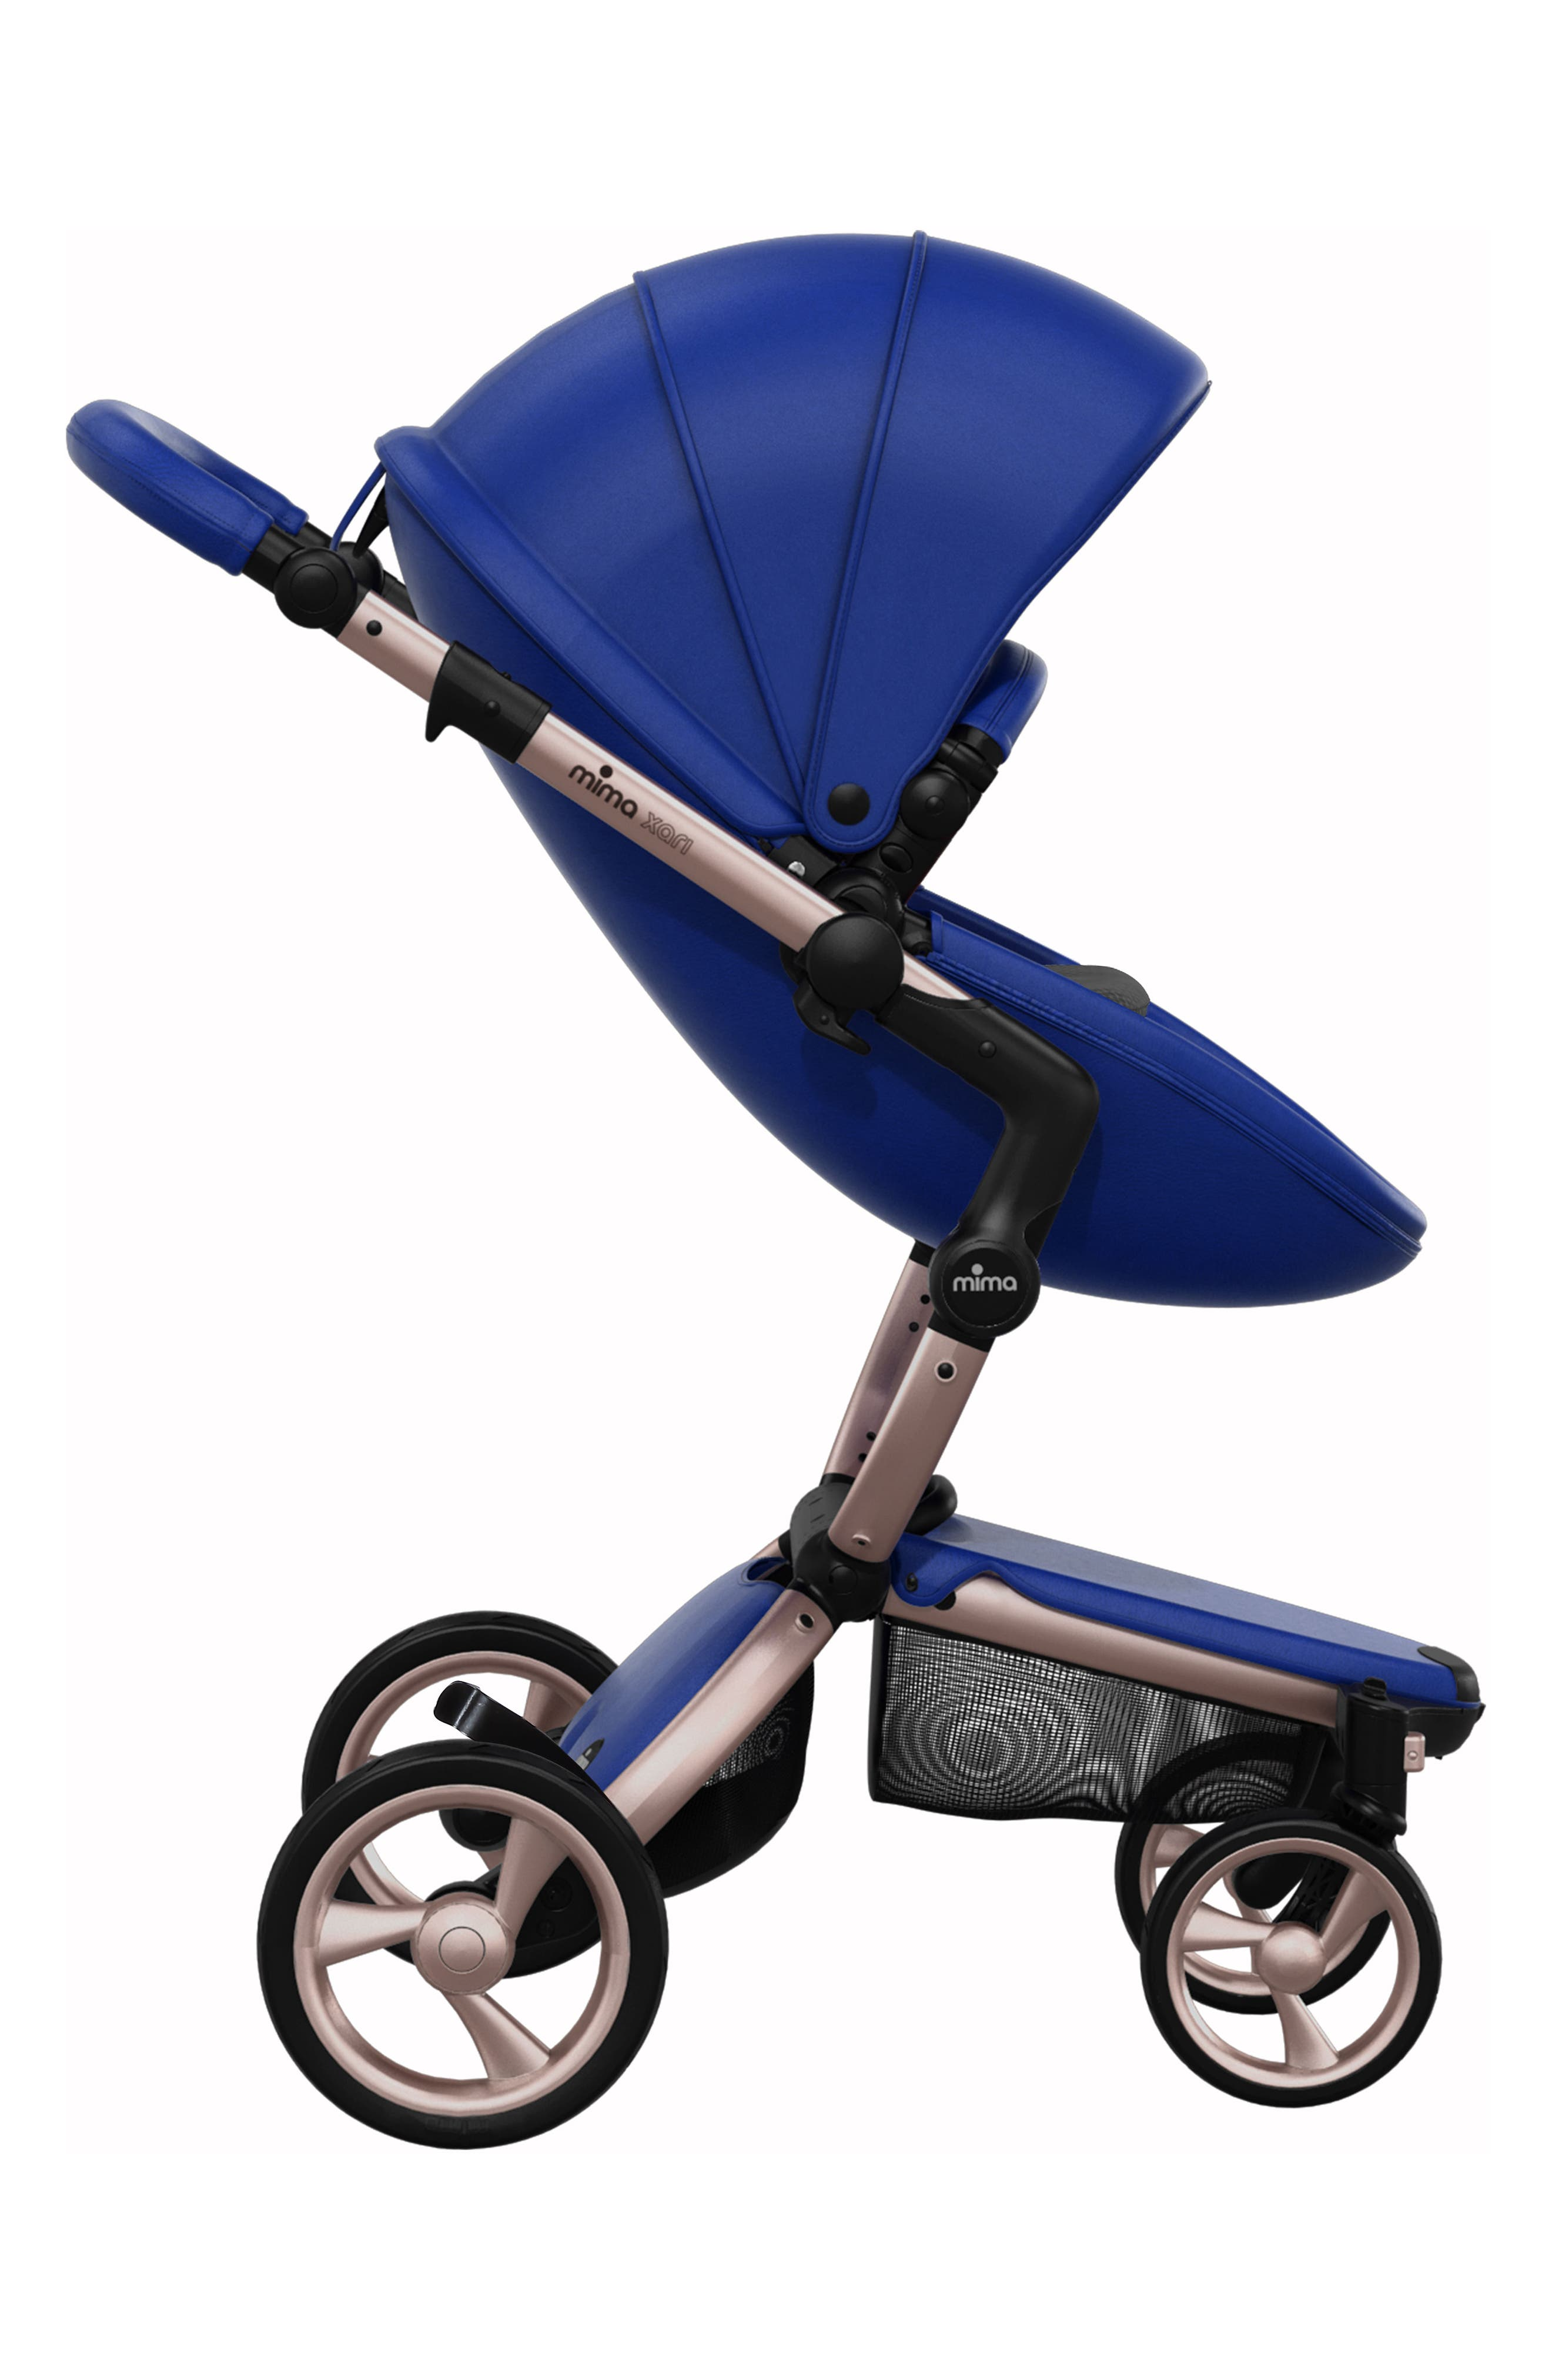 Xari Rose Gold Chassis Stroller with Reversible Reclining Seat & Carrycot,                             Alternate thumbnail 3, color,                             Royal Blue/ Black